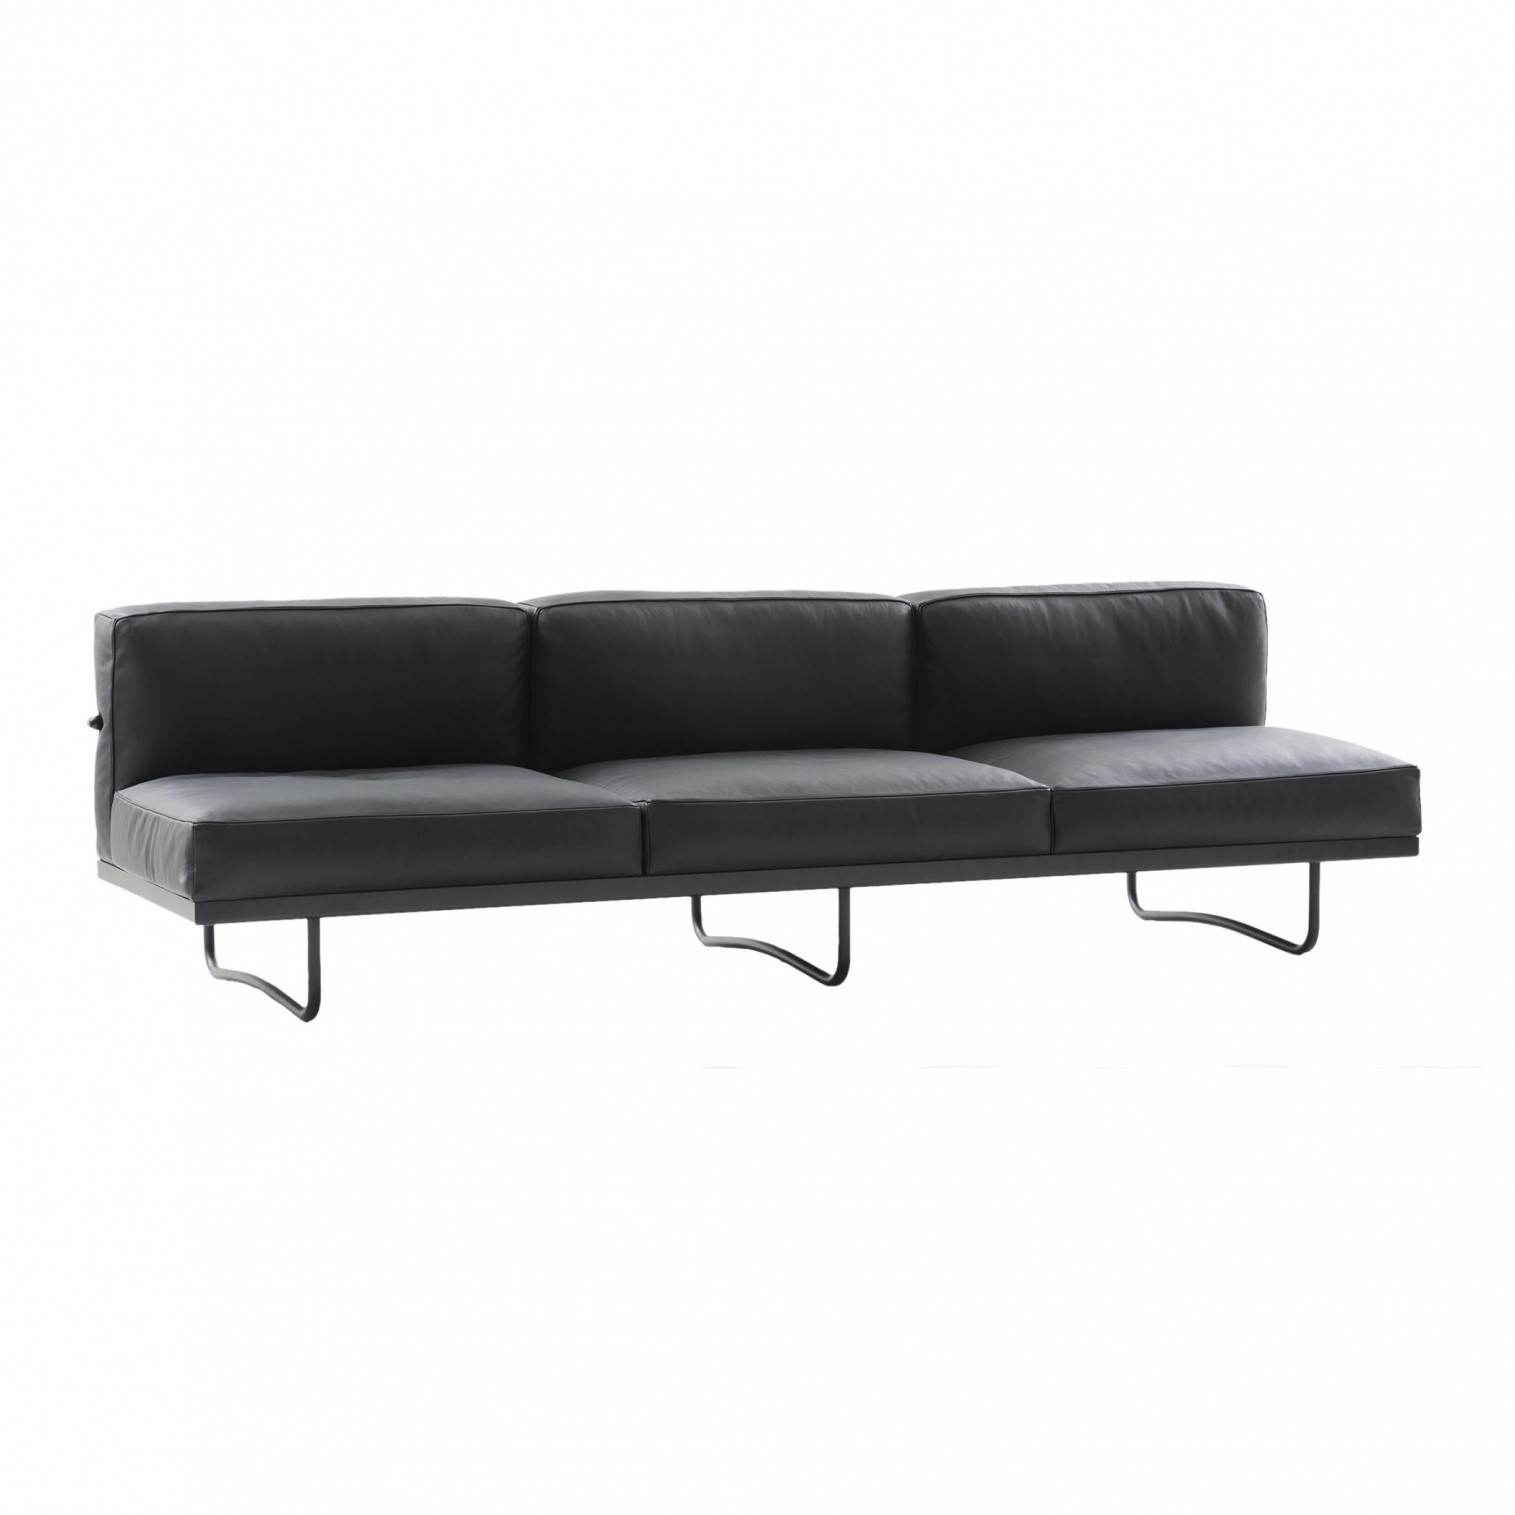 Cassina Le Corbusier Lc5 3 Seater Sofa Ambientedirect